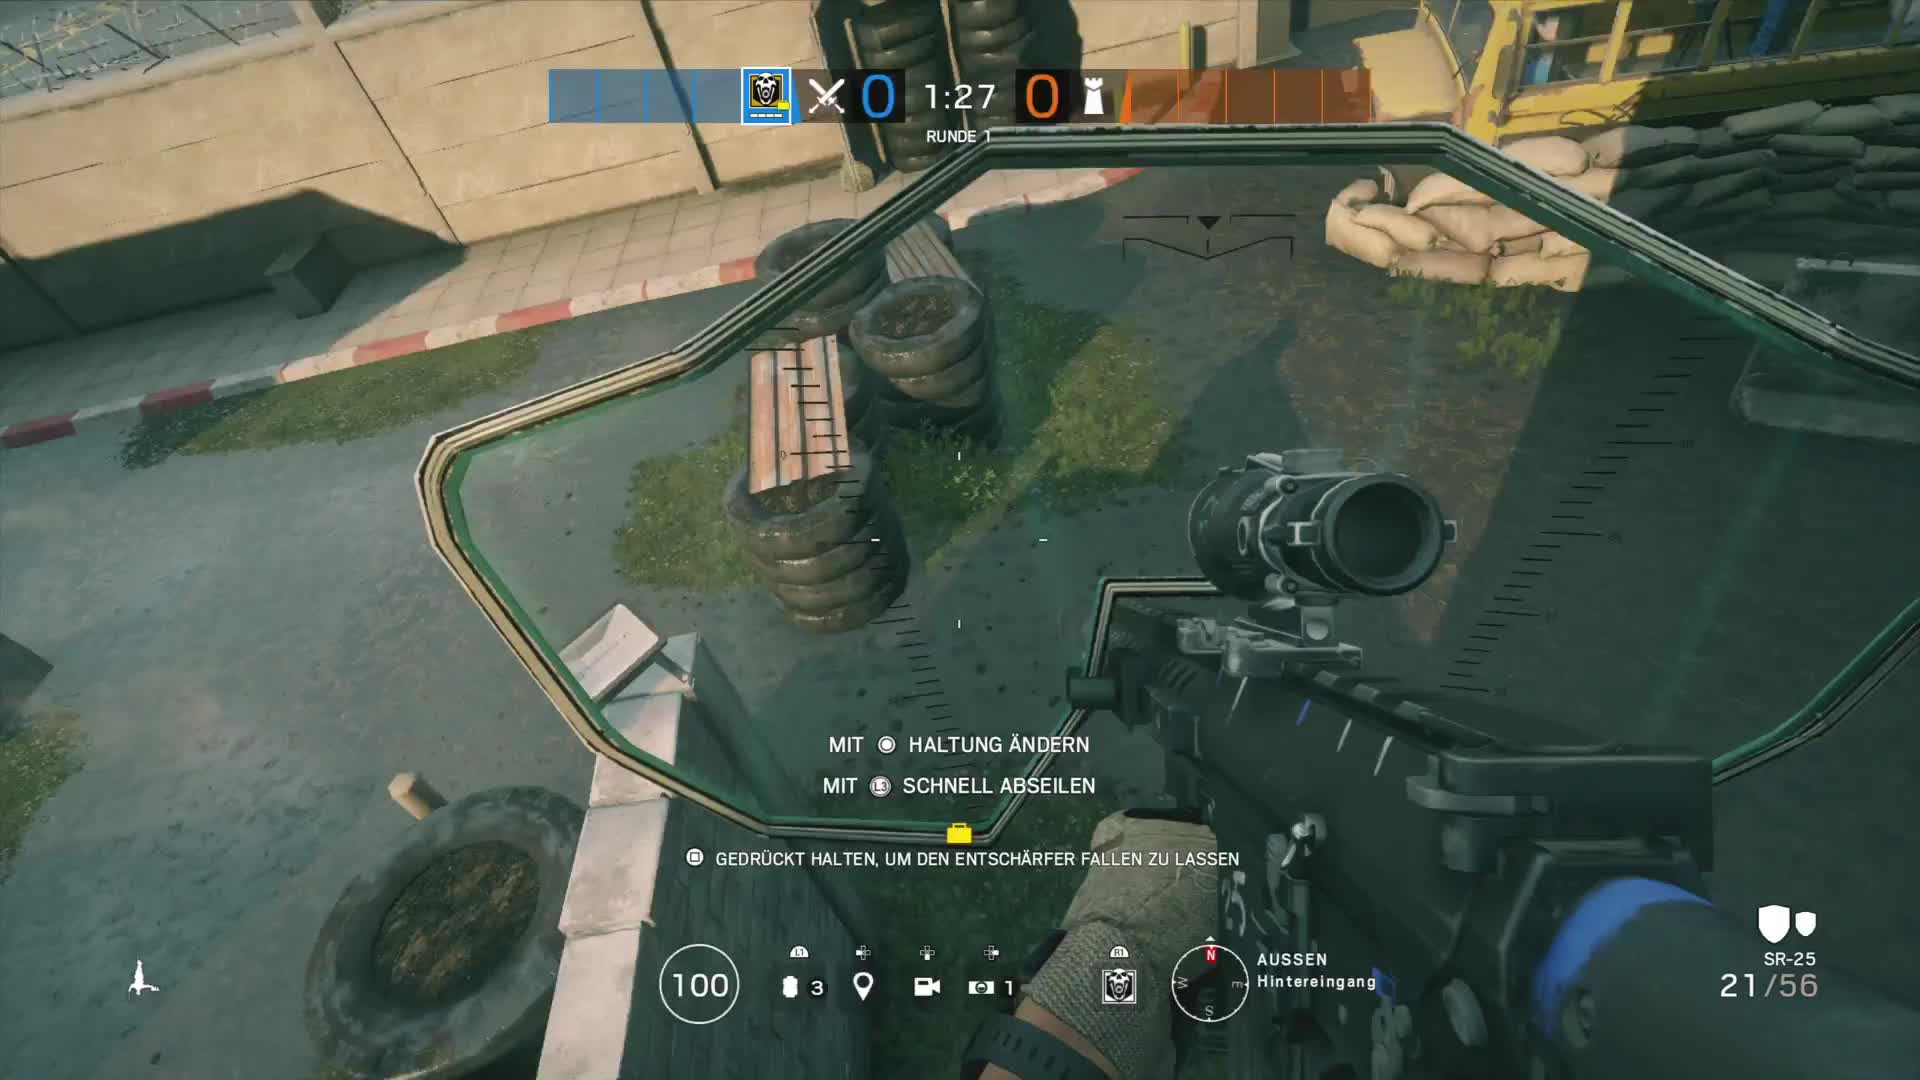 #PS4share, CallaxD, PlayStation 4, Sony Interactive Entertainment, Tom Clancy's Rainbow Six® Siege, You can aim there even when rappelling. GIFs